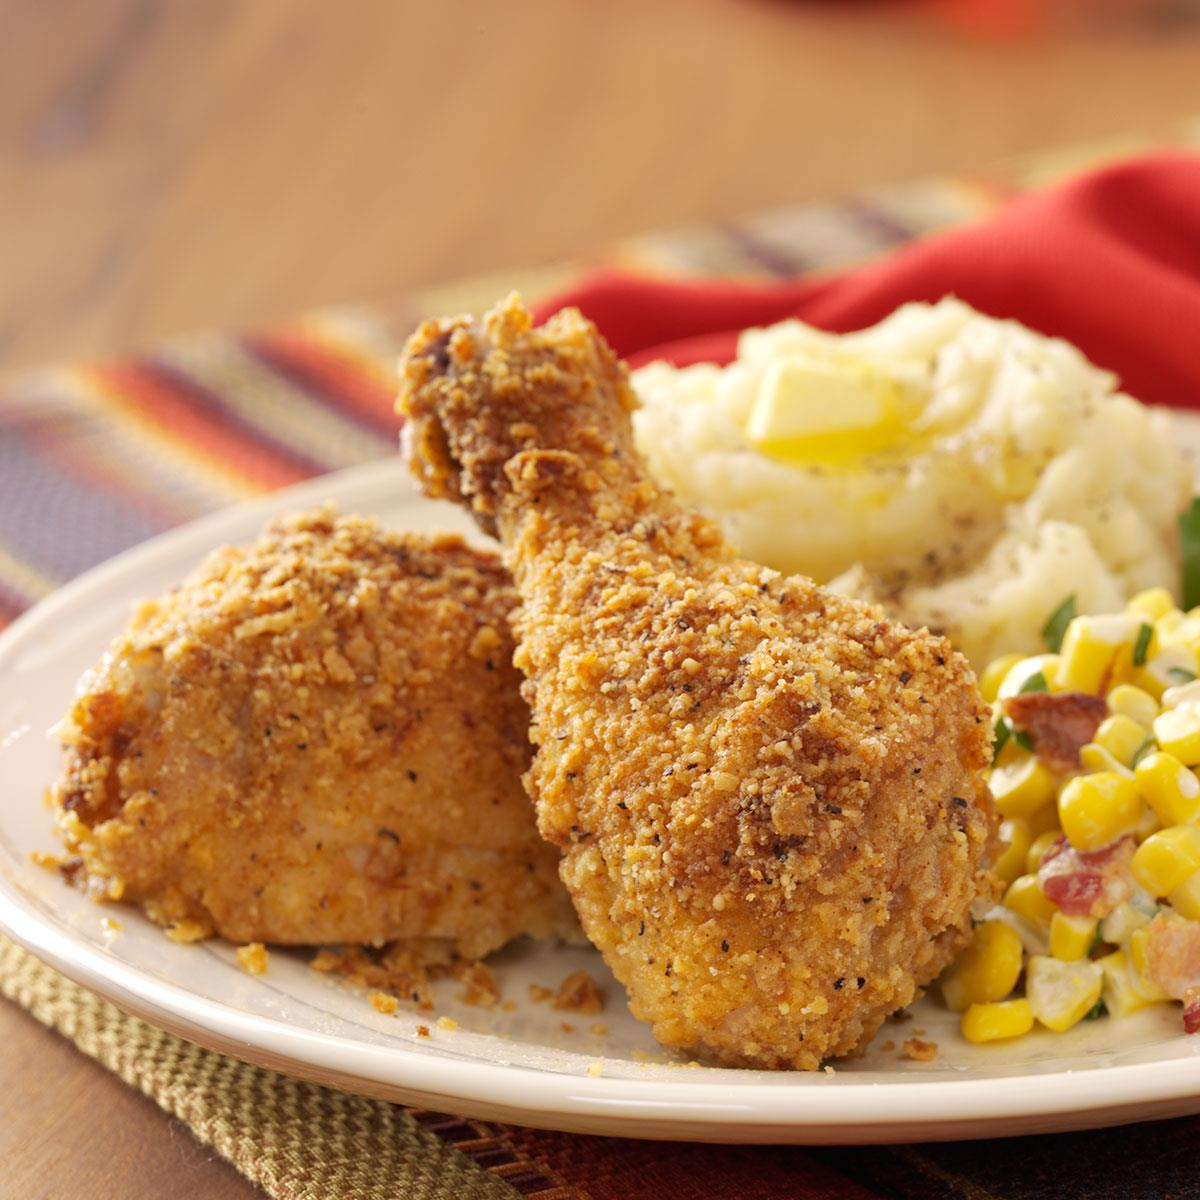 Baked Crunchy Chicken image